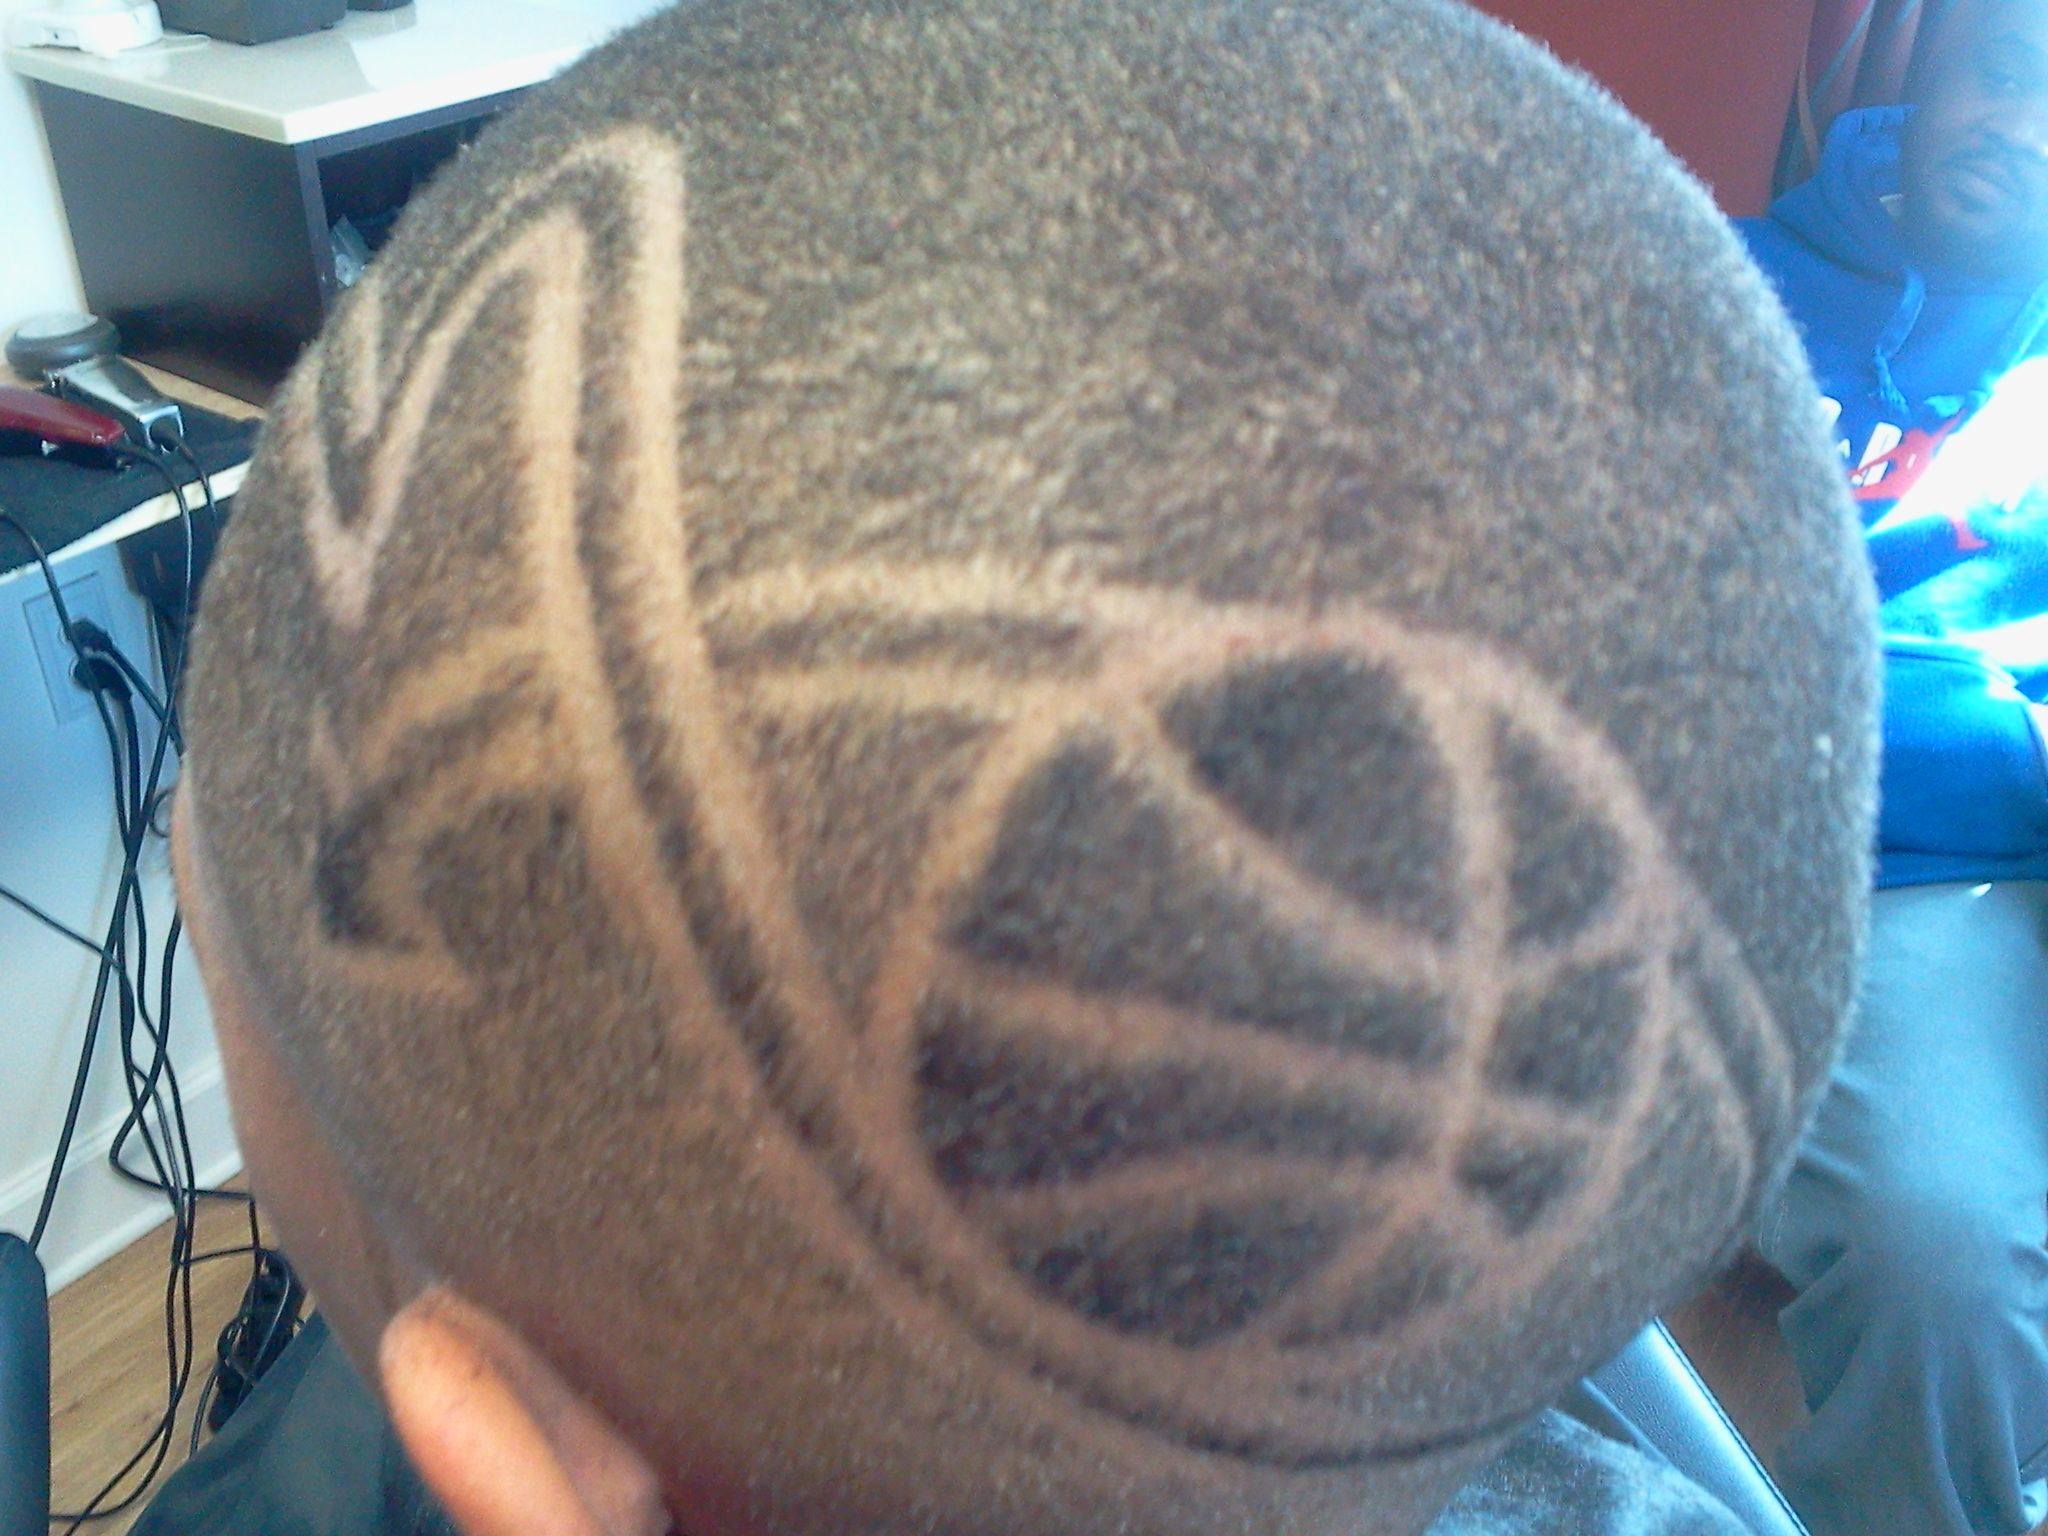 Hair Style Design: Basketball Themed Design That I Did From A Part.